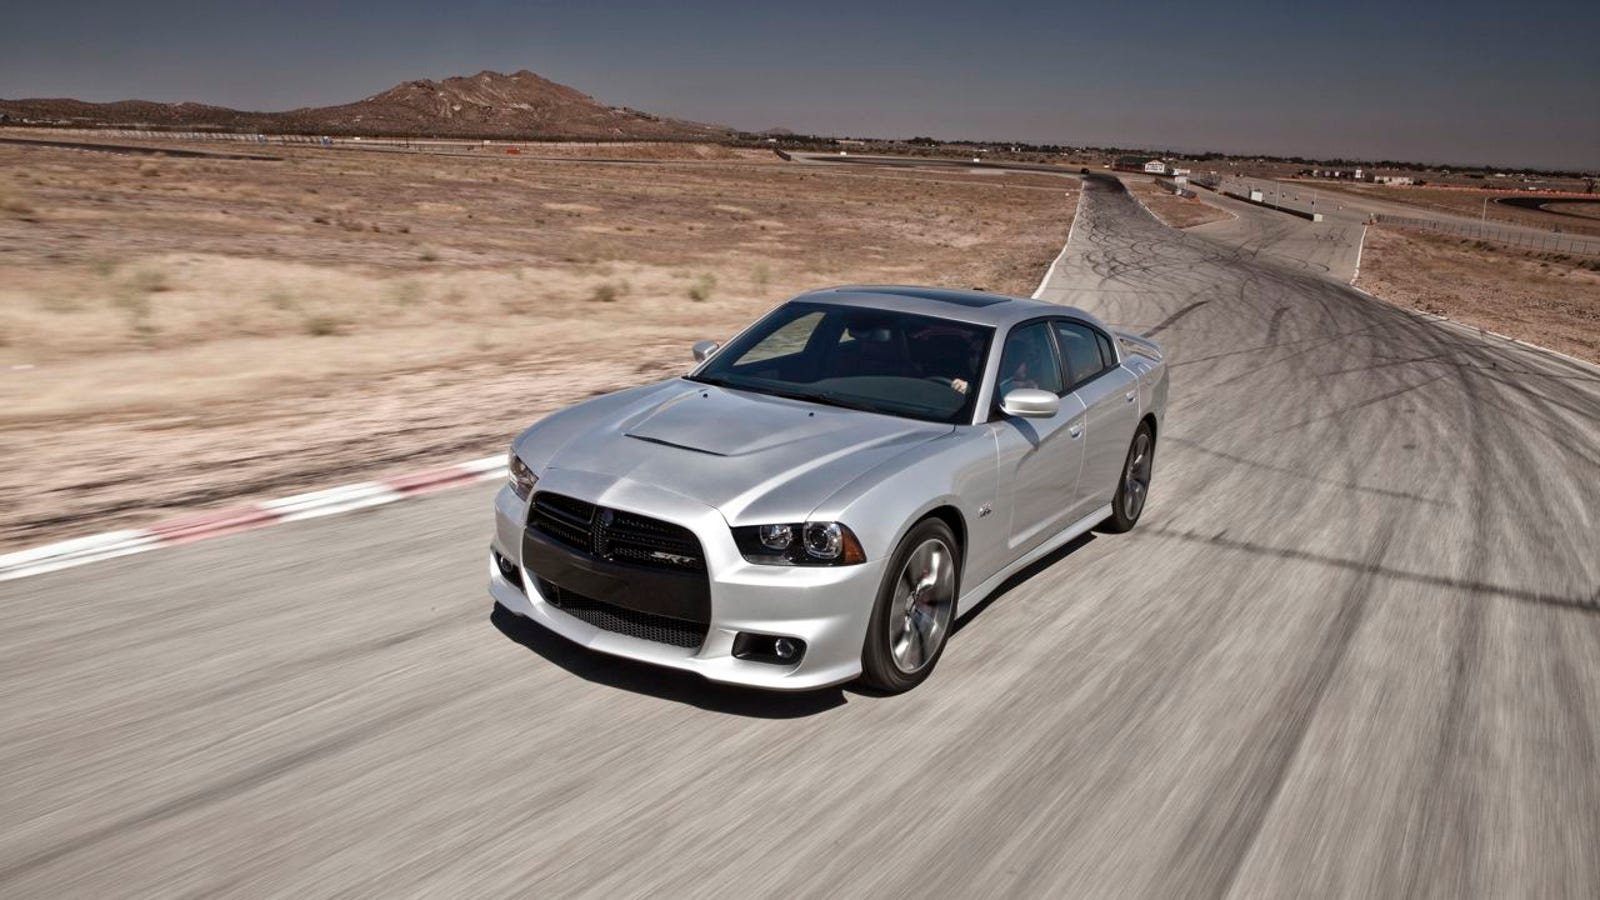 Dodge Charger All Wheel Drive >> 2012 Dodge Charger SRT8: First Drive